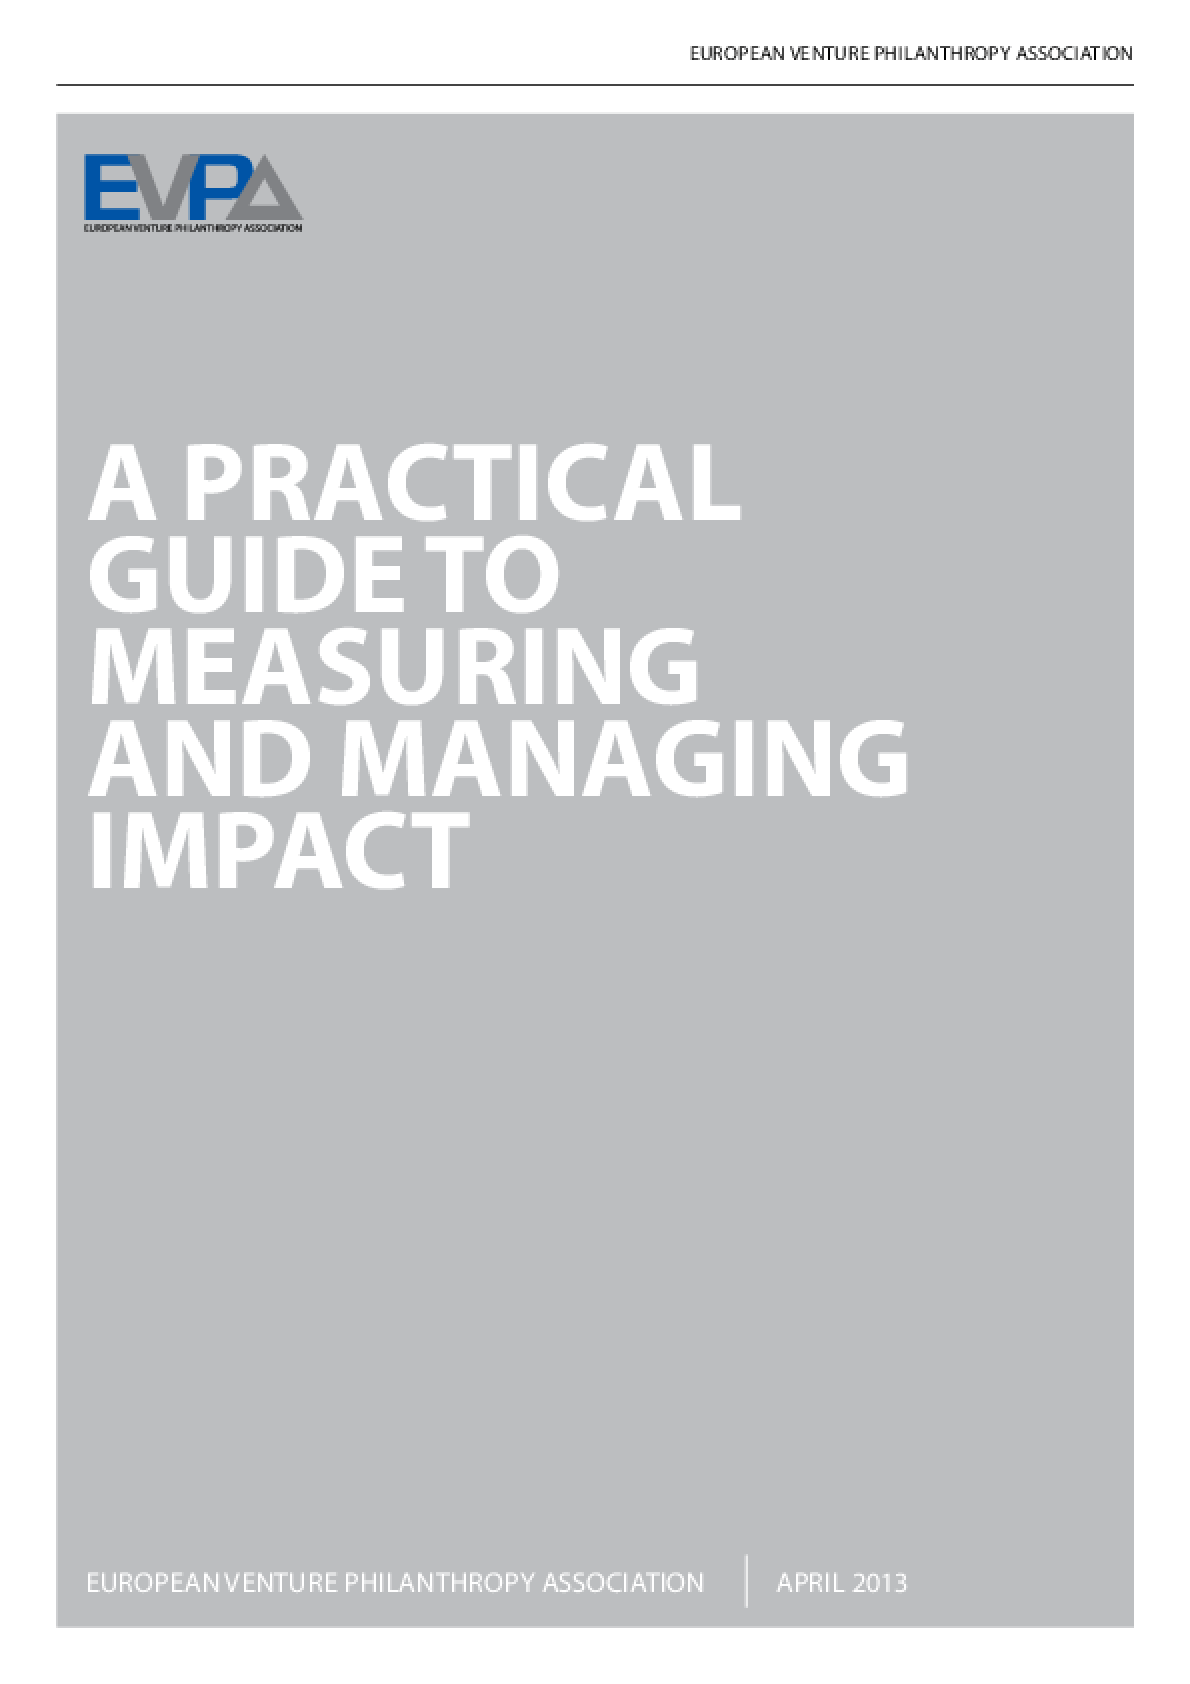 A Practical Guide To Measuring and Managing Impact